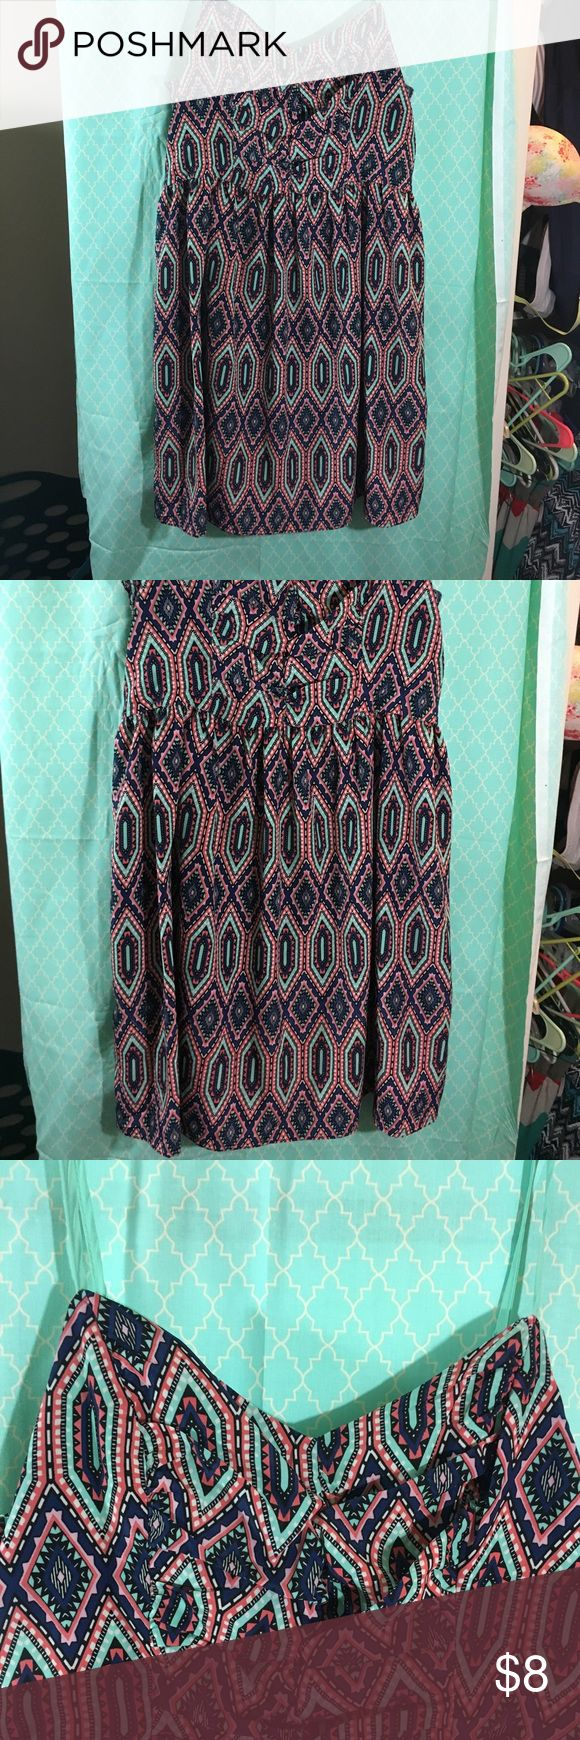 Multicolored patterned mini dress I love this Pattern! Dress is in perfect condition! Xhilaration Dresses Mini